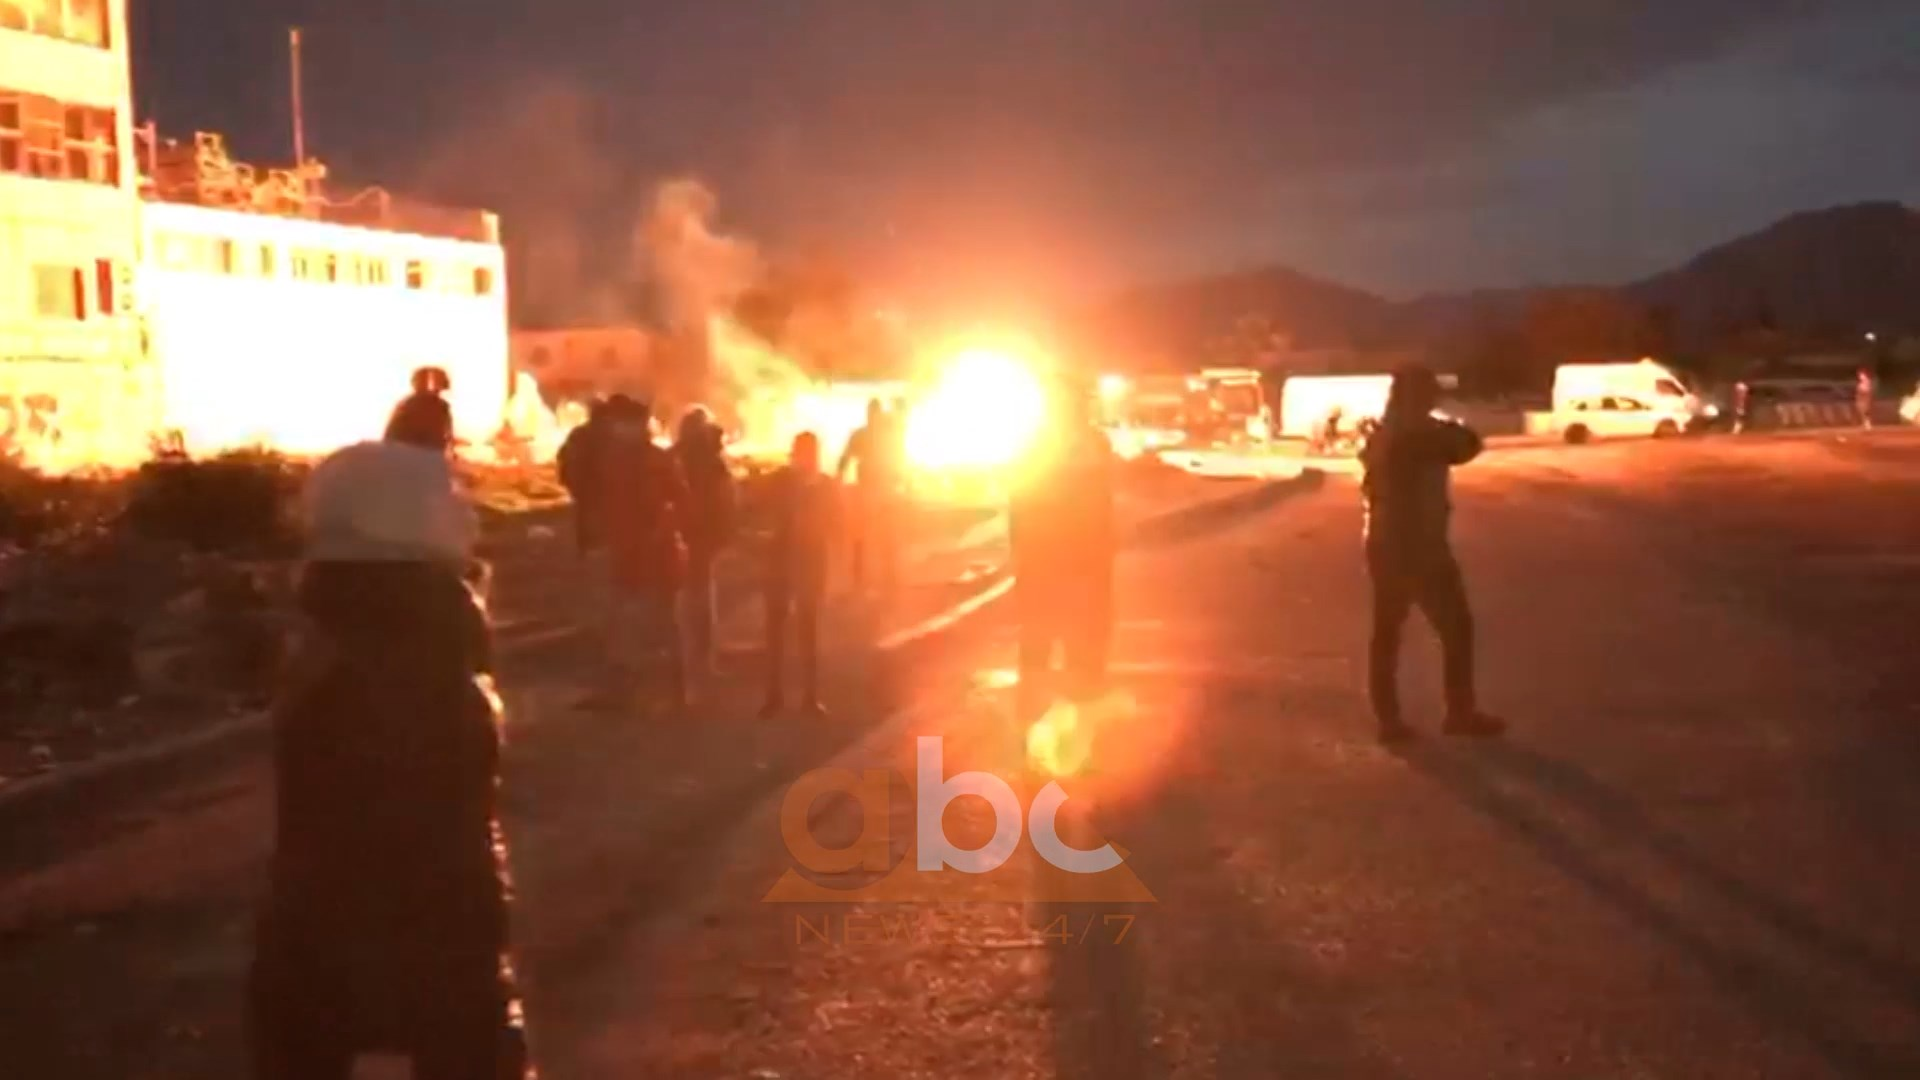 Chaos in the Astir area: Clashes between residents and the police